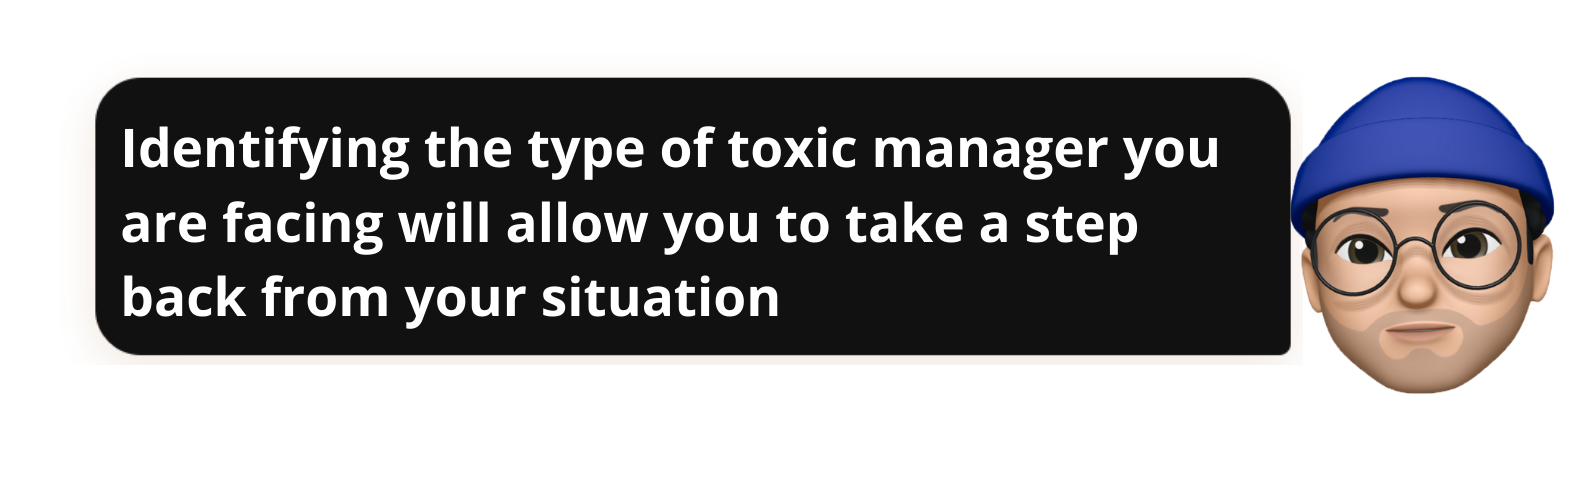 Identifying the type of toxic manager you are facing will allow you to take a step back from your situation - Popwork